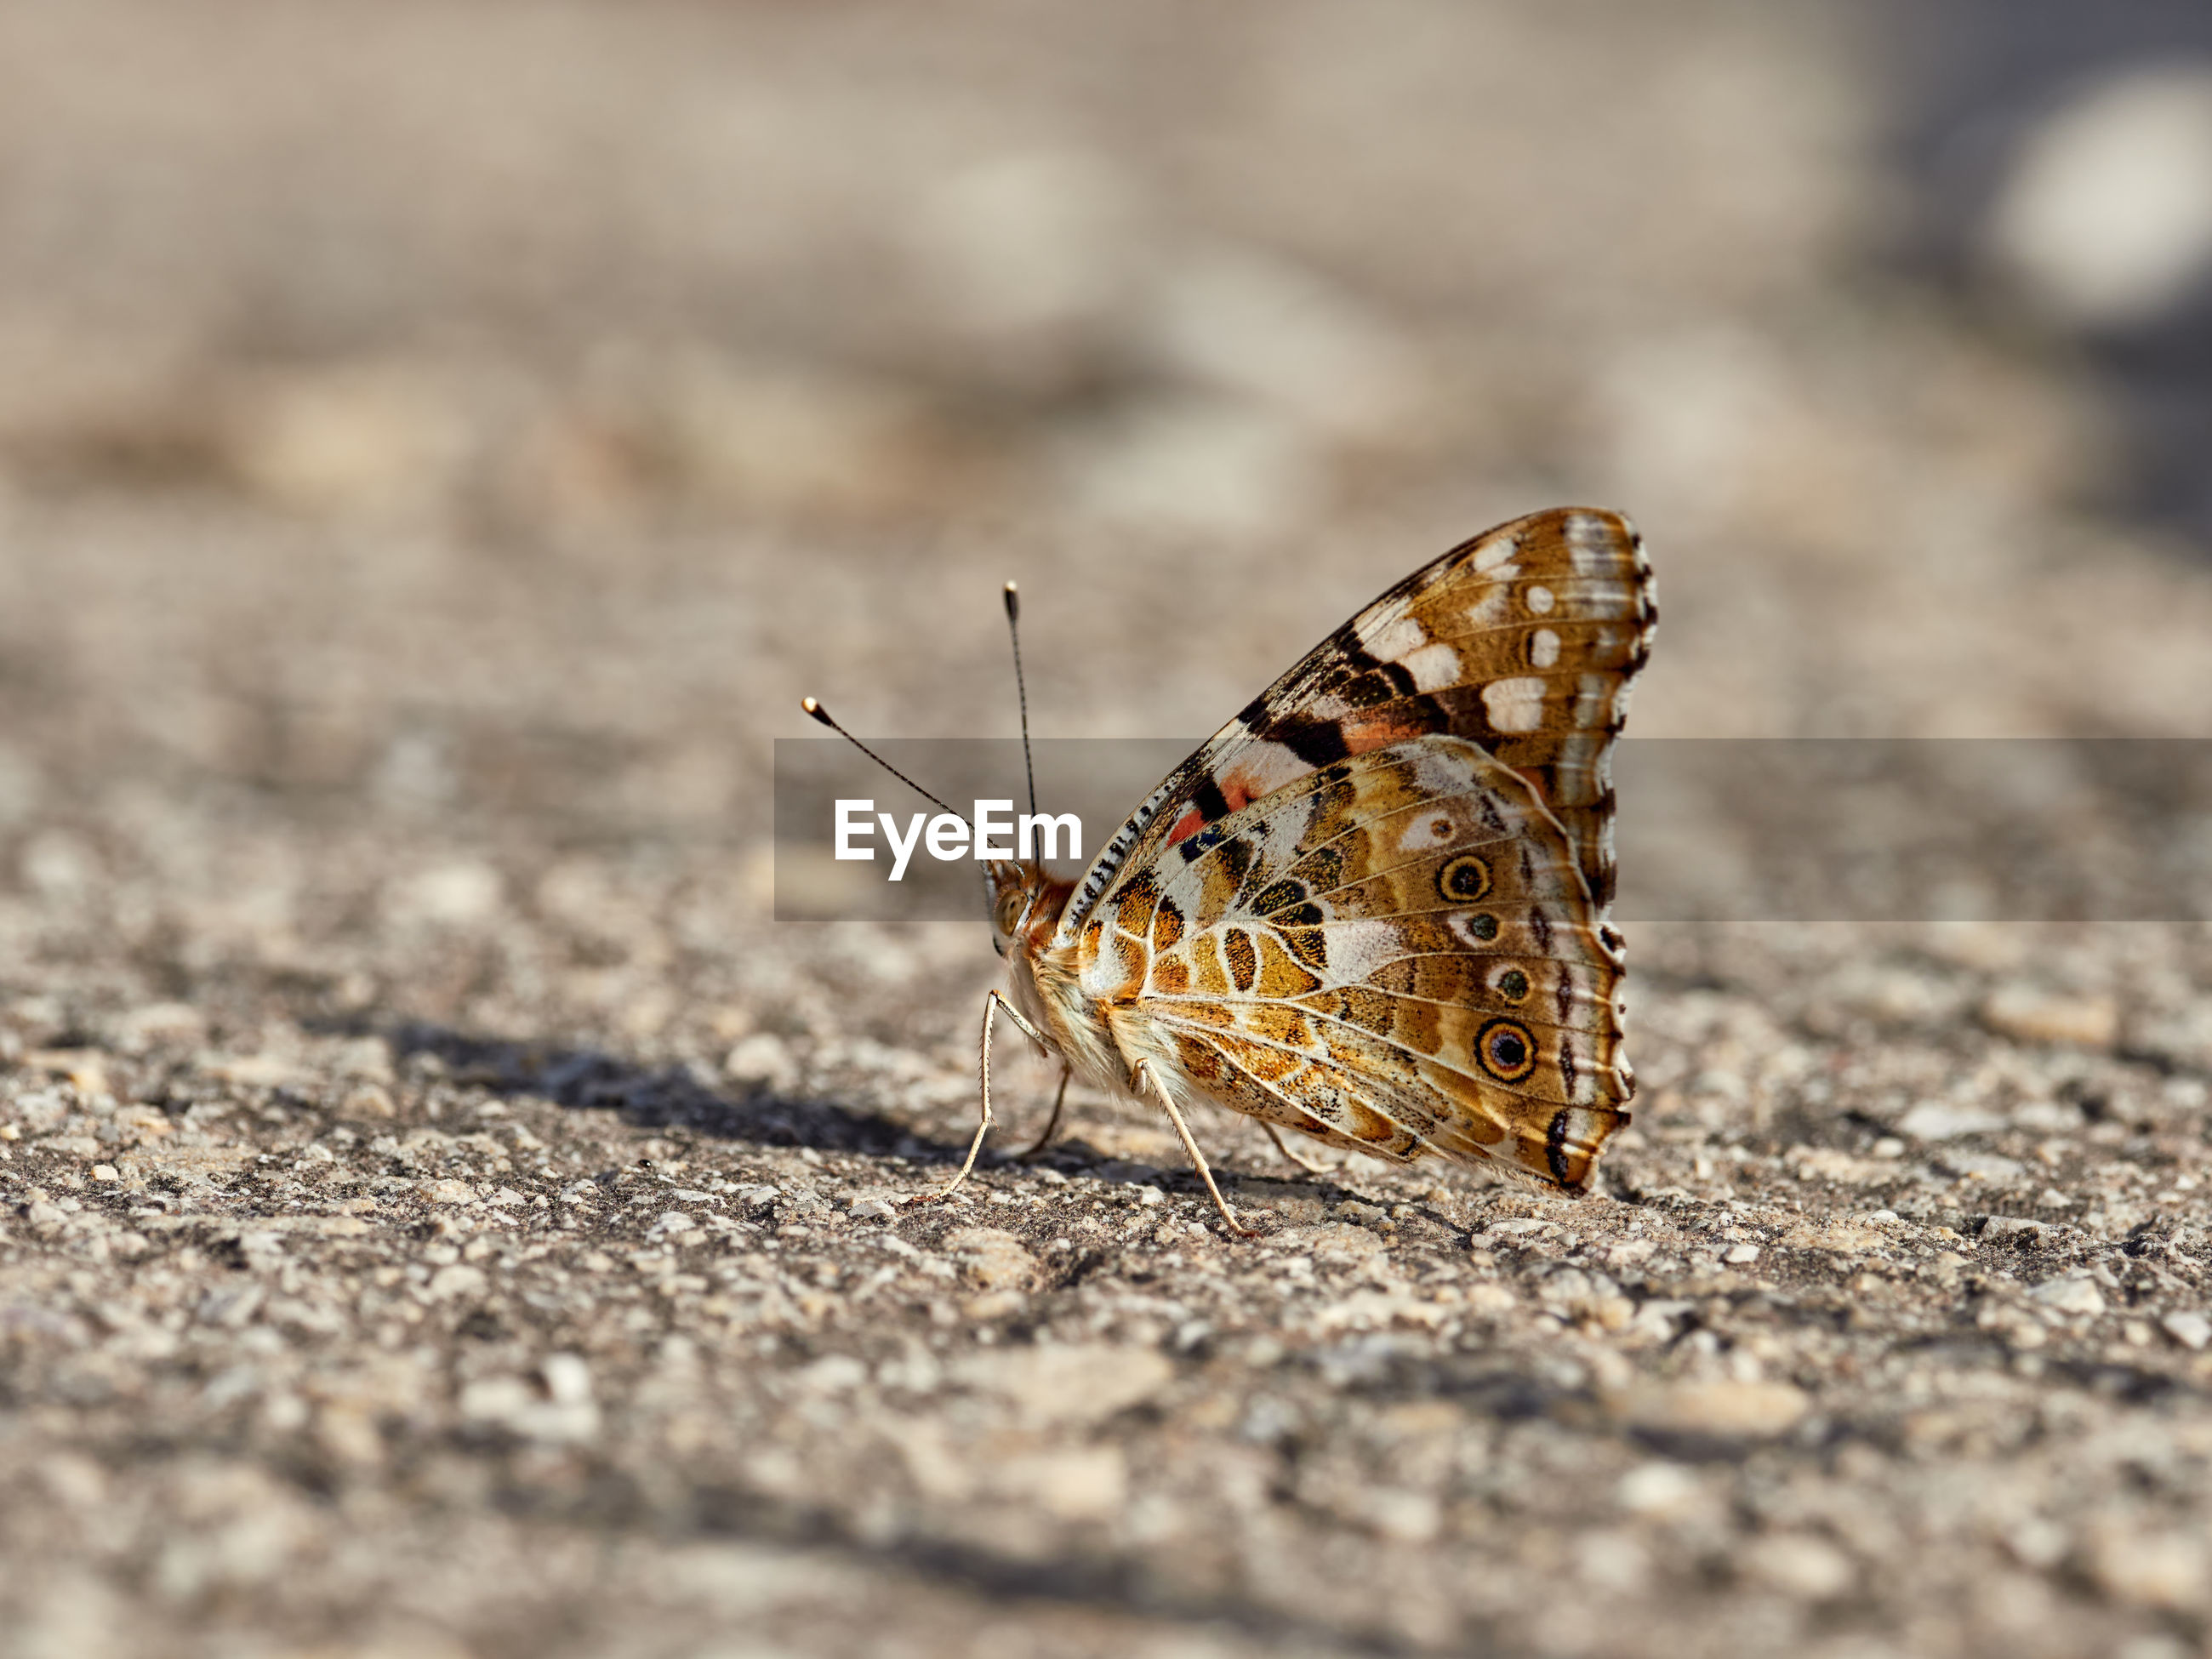 Painted lady butterfly, vanessa cardui, perched on the ground, near bellus, spain